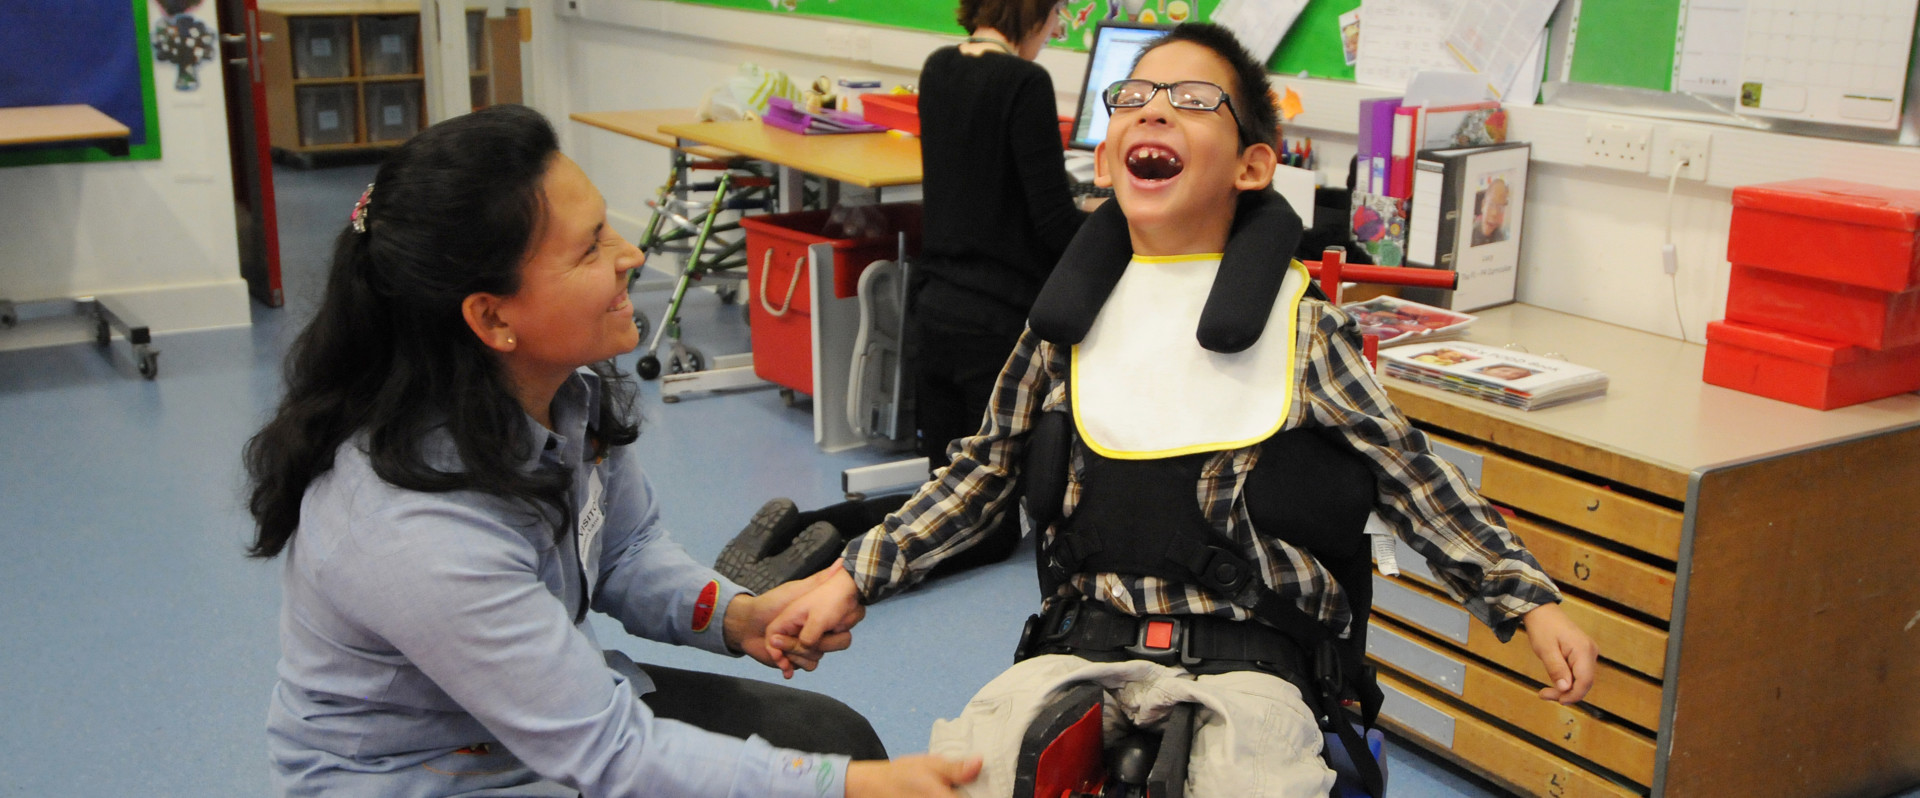 Happy chid in assistive mobility device